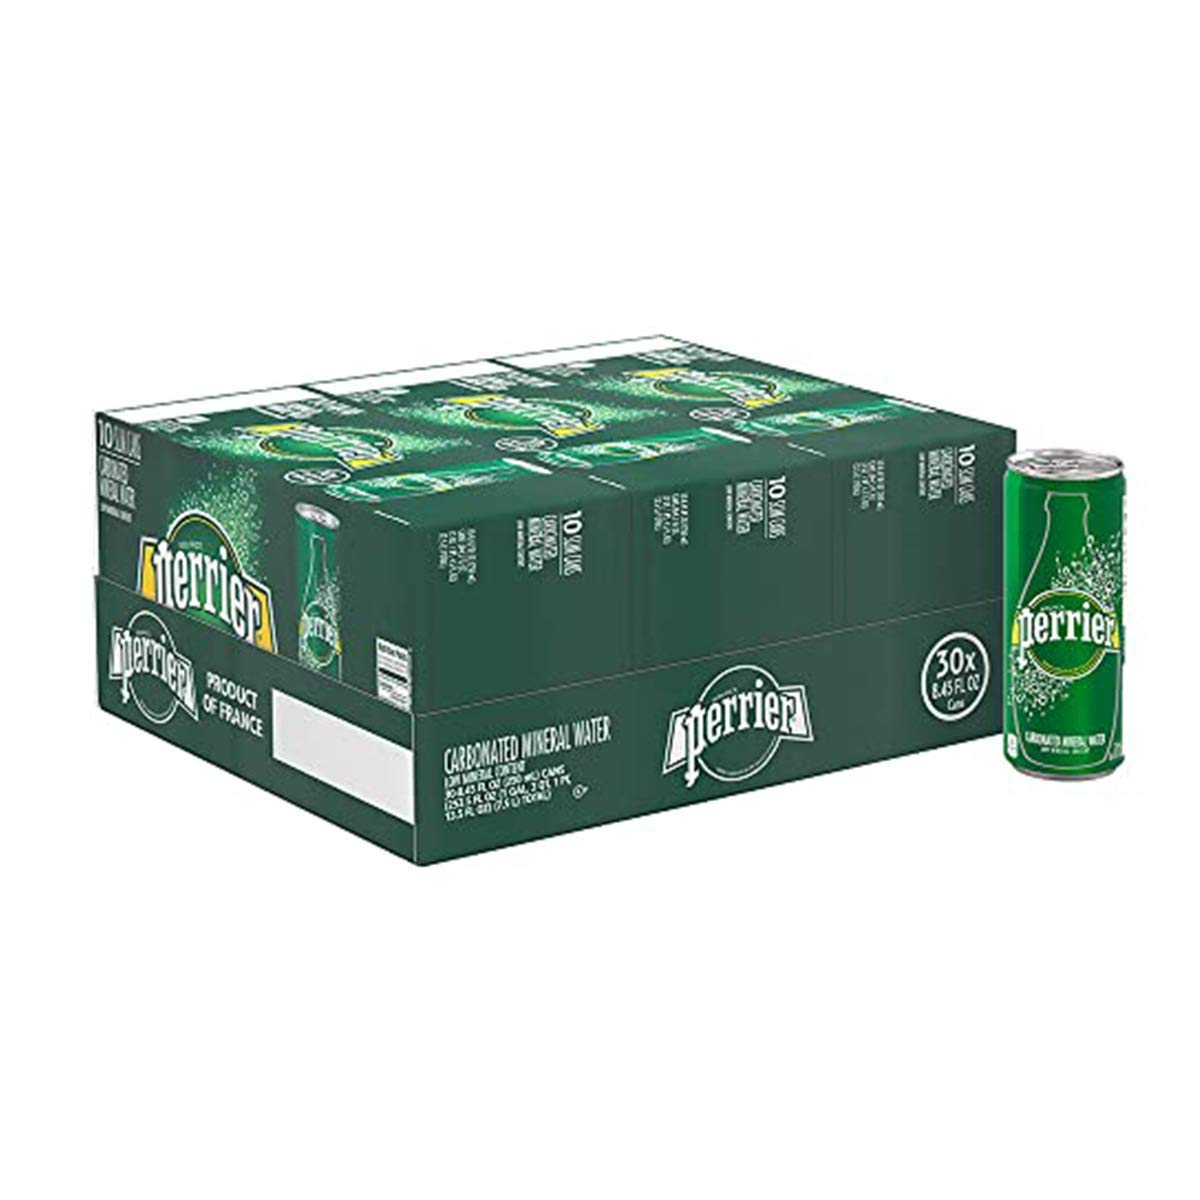 30-Pack 8.45oz Perrier Flavored Carbonated Mineral Water (Original)